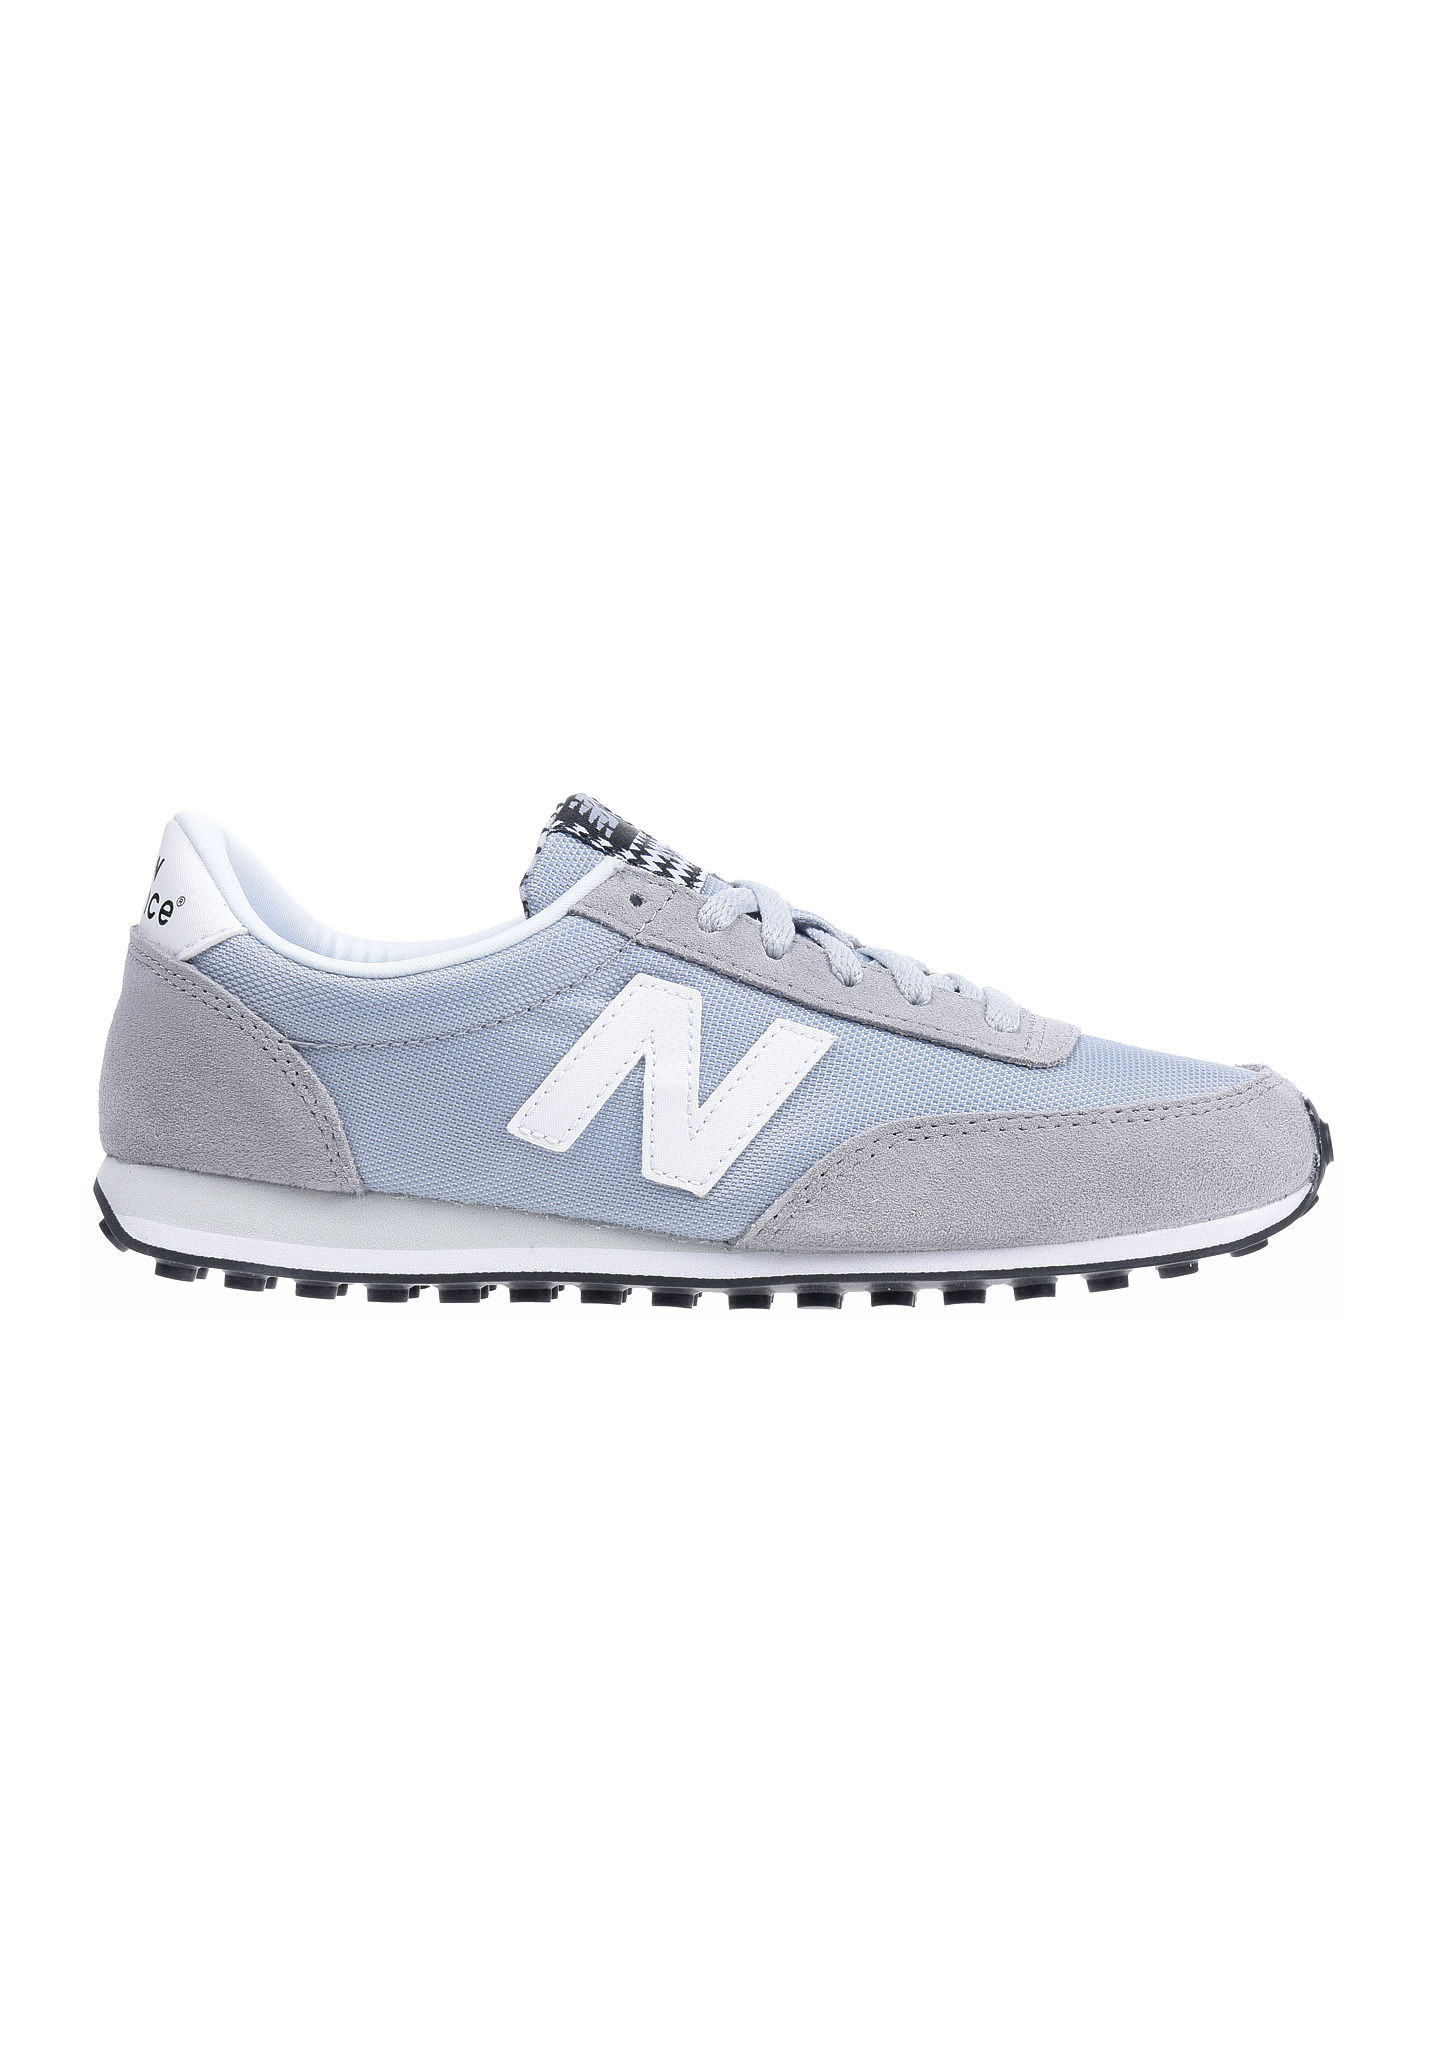 New Balance Grises Mujer atractivo New Balance Mujer Gris Oscuro Ytel Of 42  Adorable New Balance Grises Mujer